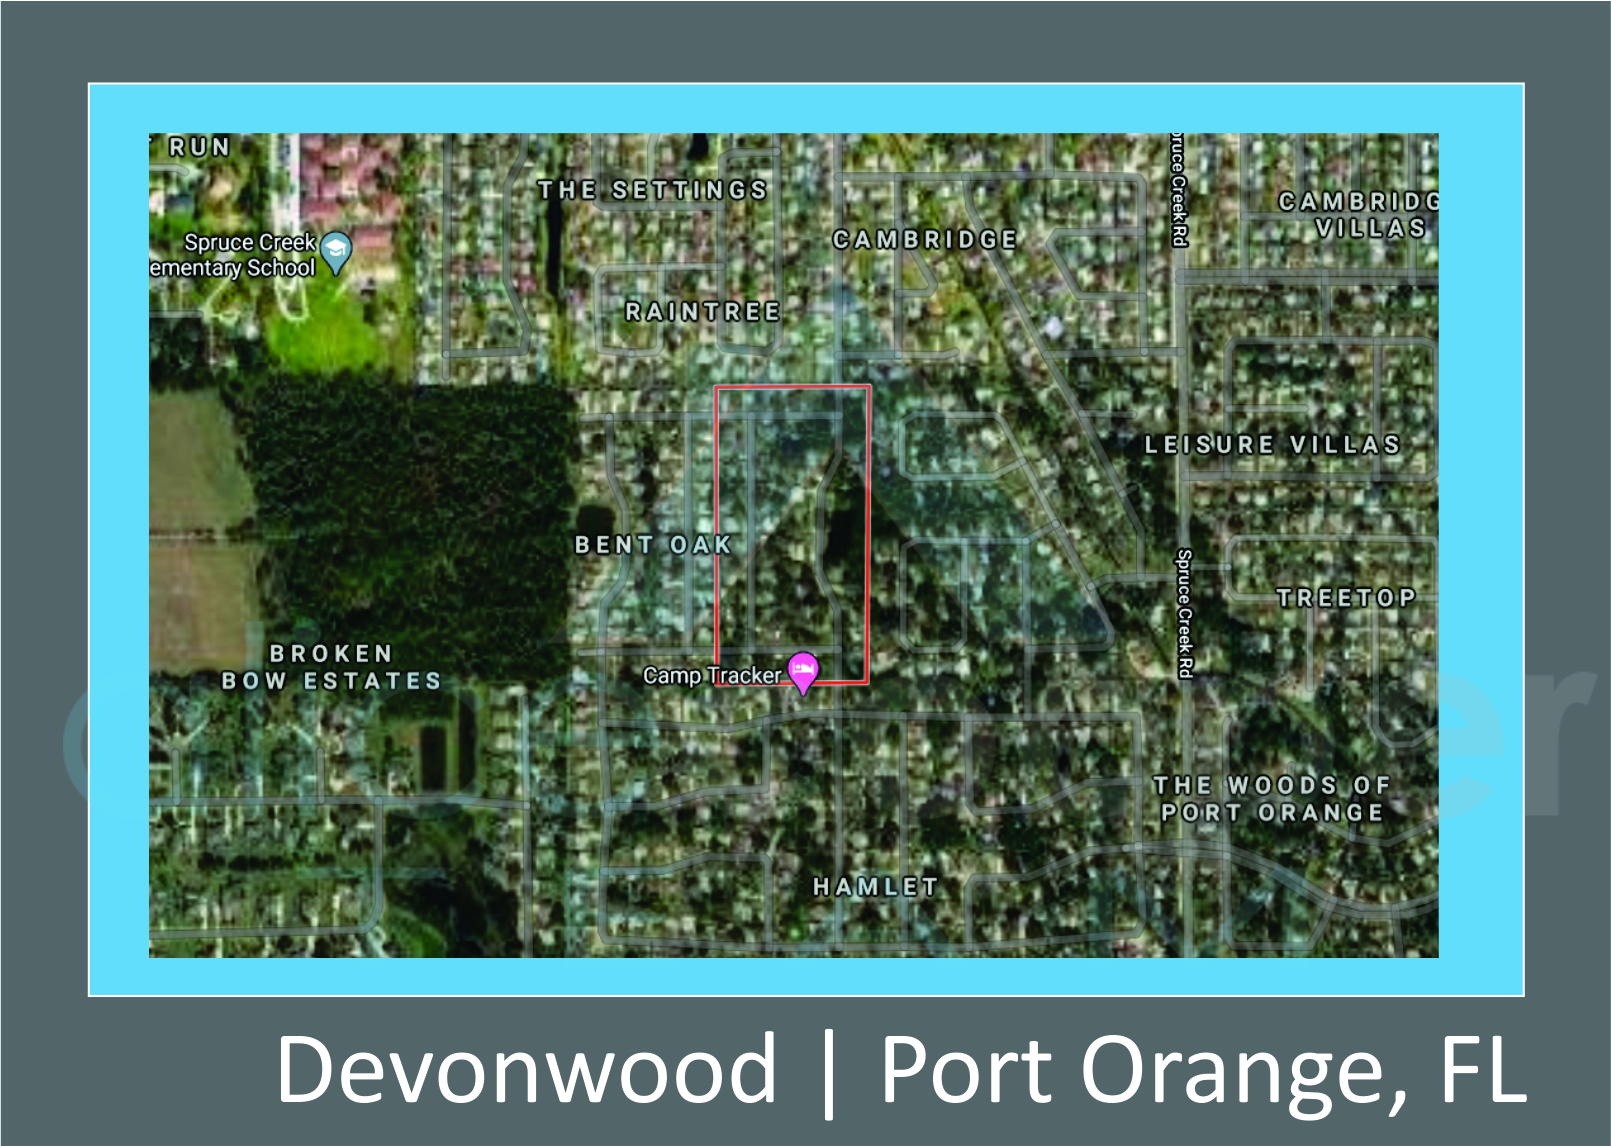 Map of Devonwood Port Orange, FL